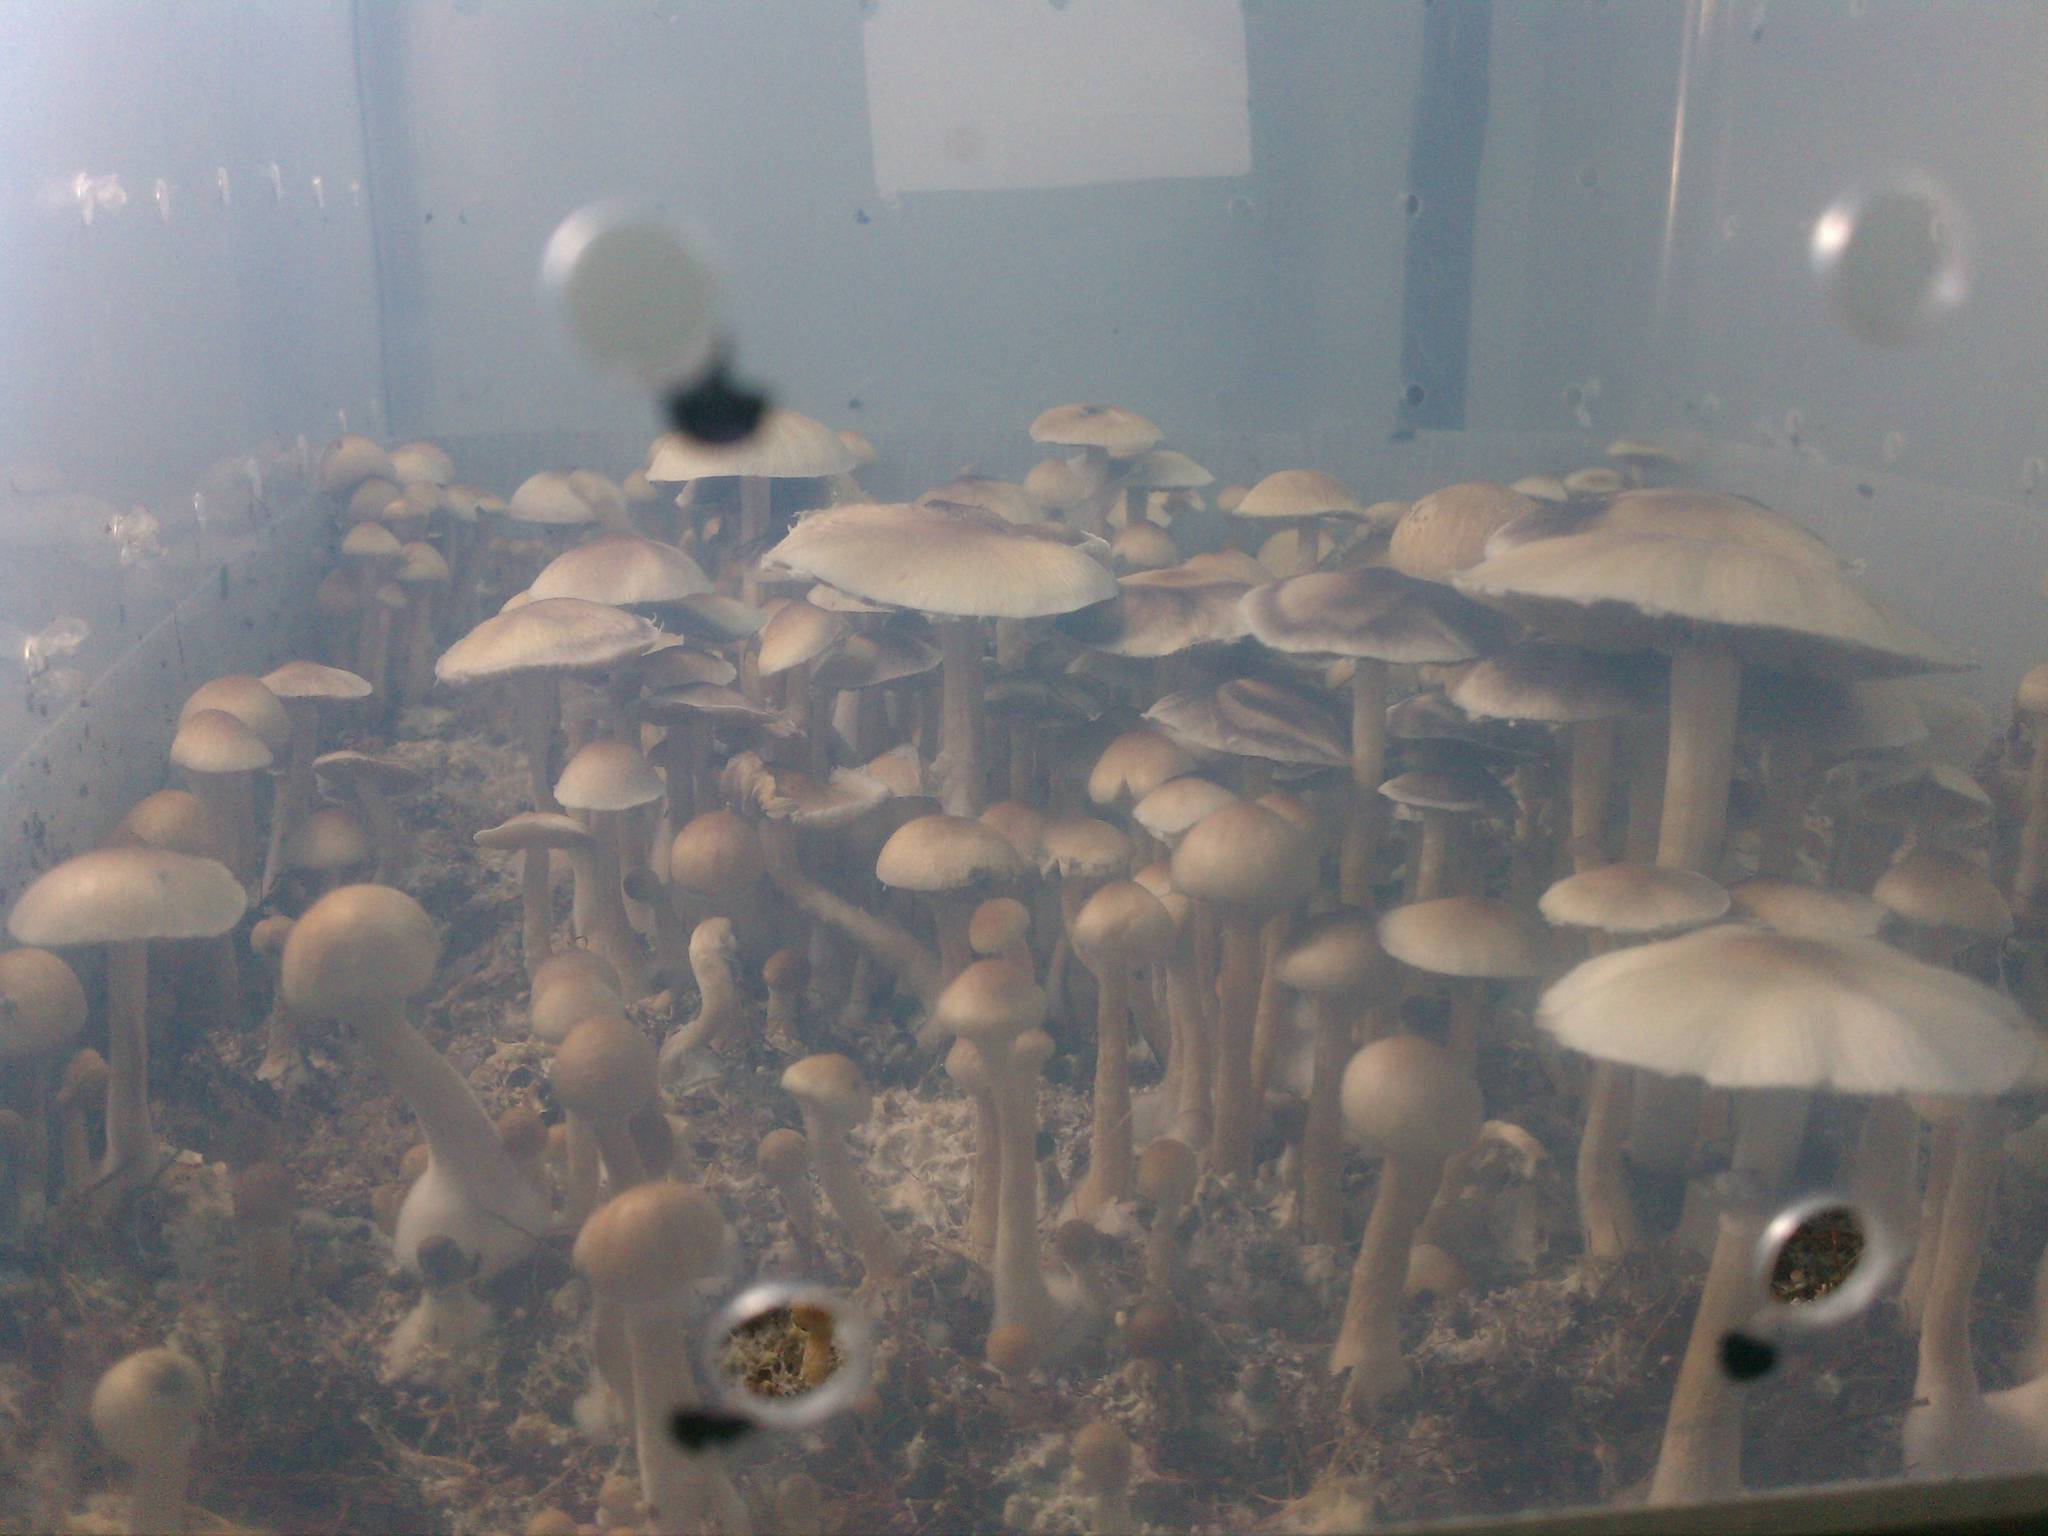 Mini Mono Tub update w/ pics - Mushroom Cultivation